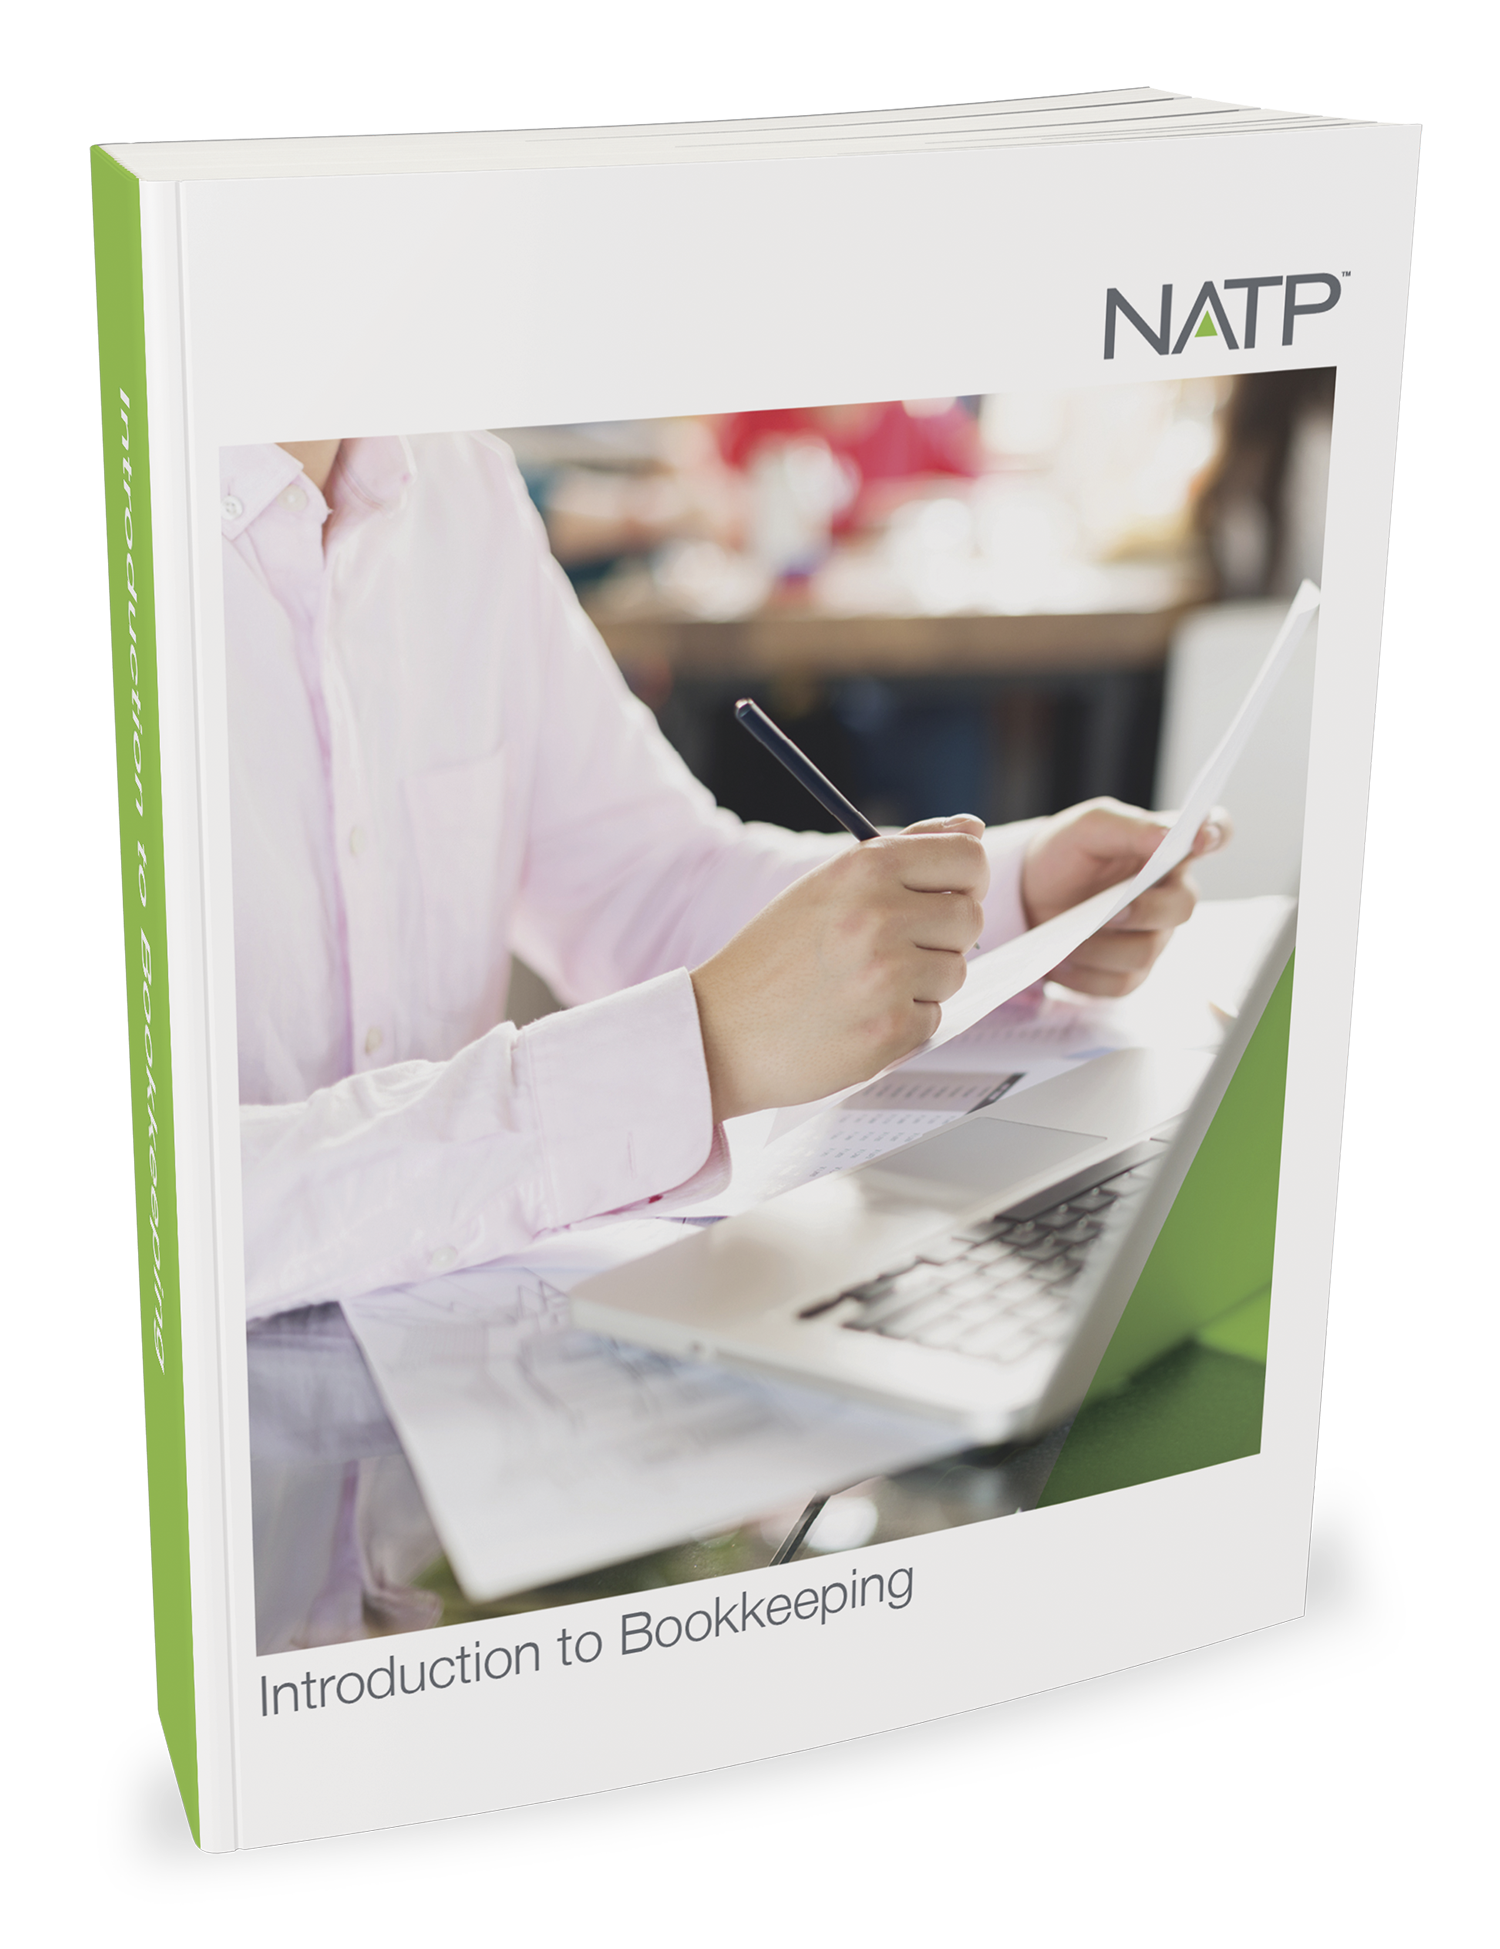 Introduction to Bookkeeping Textbook (2015) - #3660